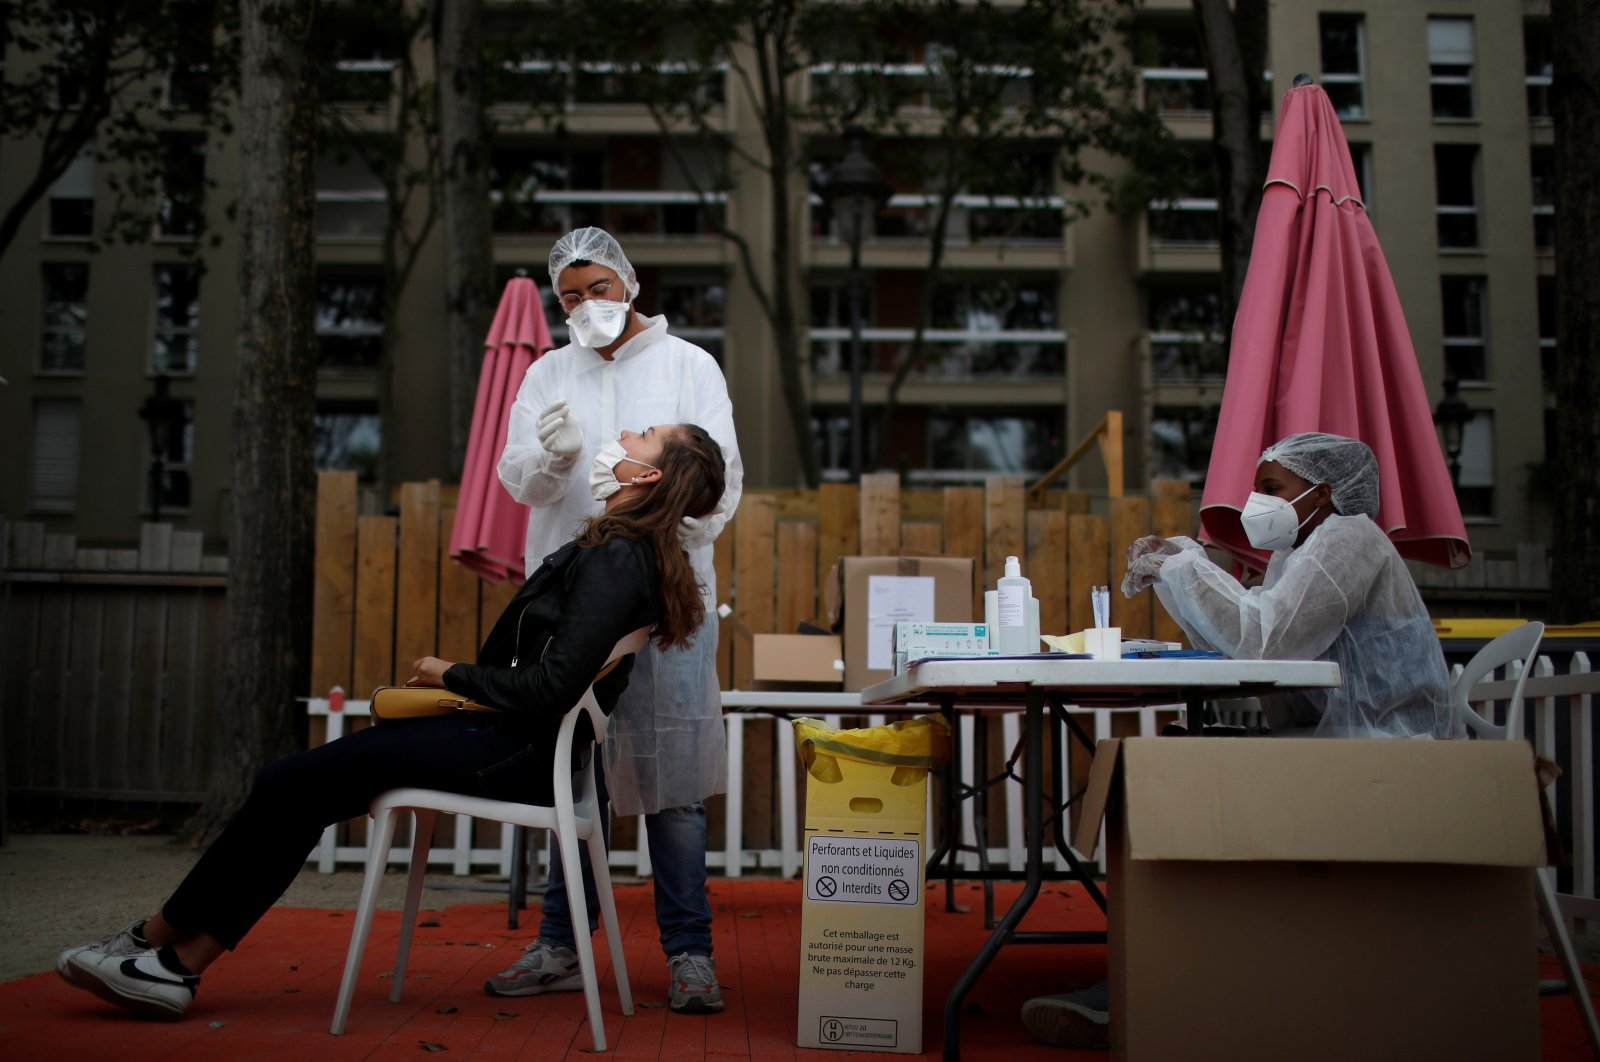 A health worker wearing a protective suit and a face mask administers a nasal swab to a patient at a testing site at the Bassin de la Villette, Paris, France, Aug. 25, 2020. (Reuters Photo)